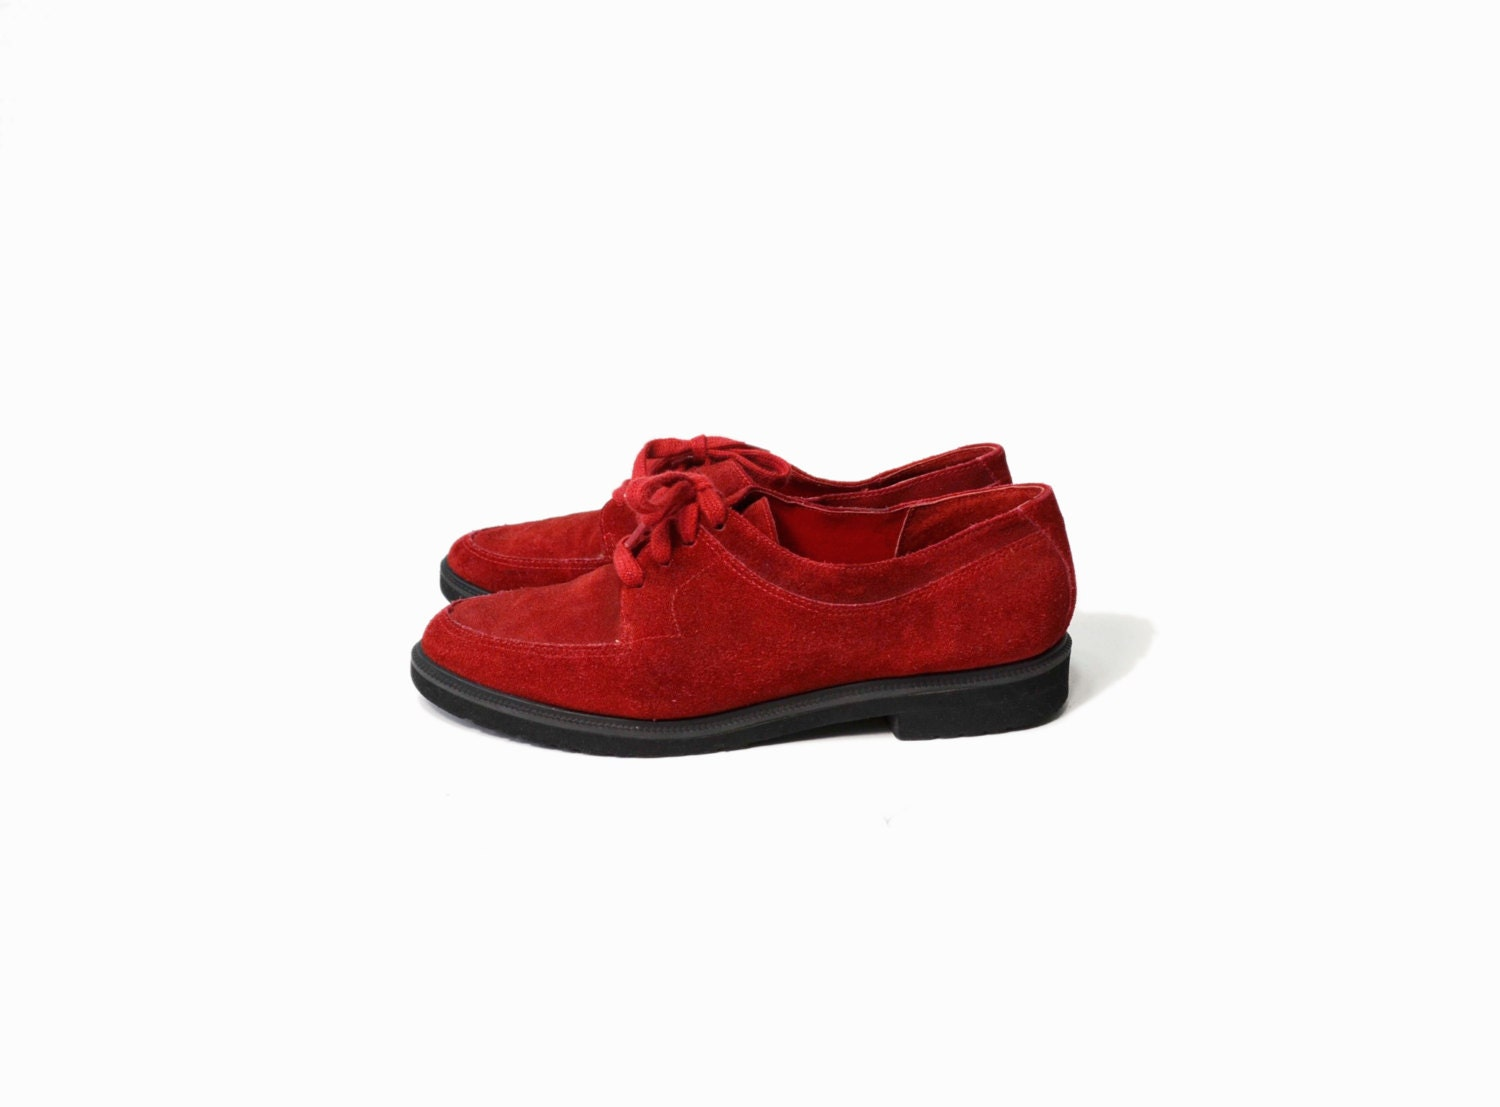 Vintage Red Suede Oxford Shoes - women's 8